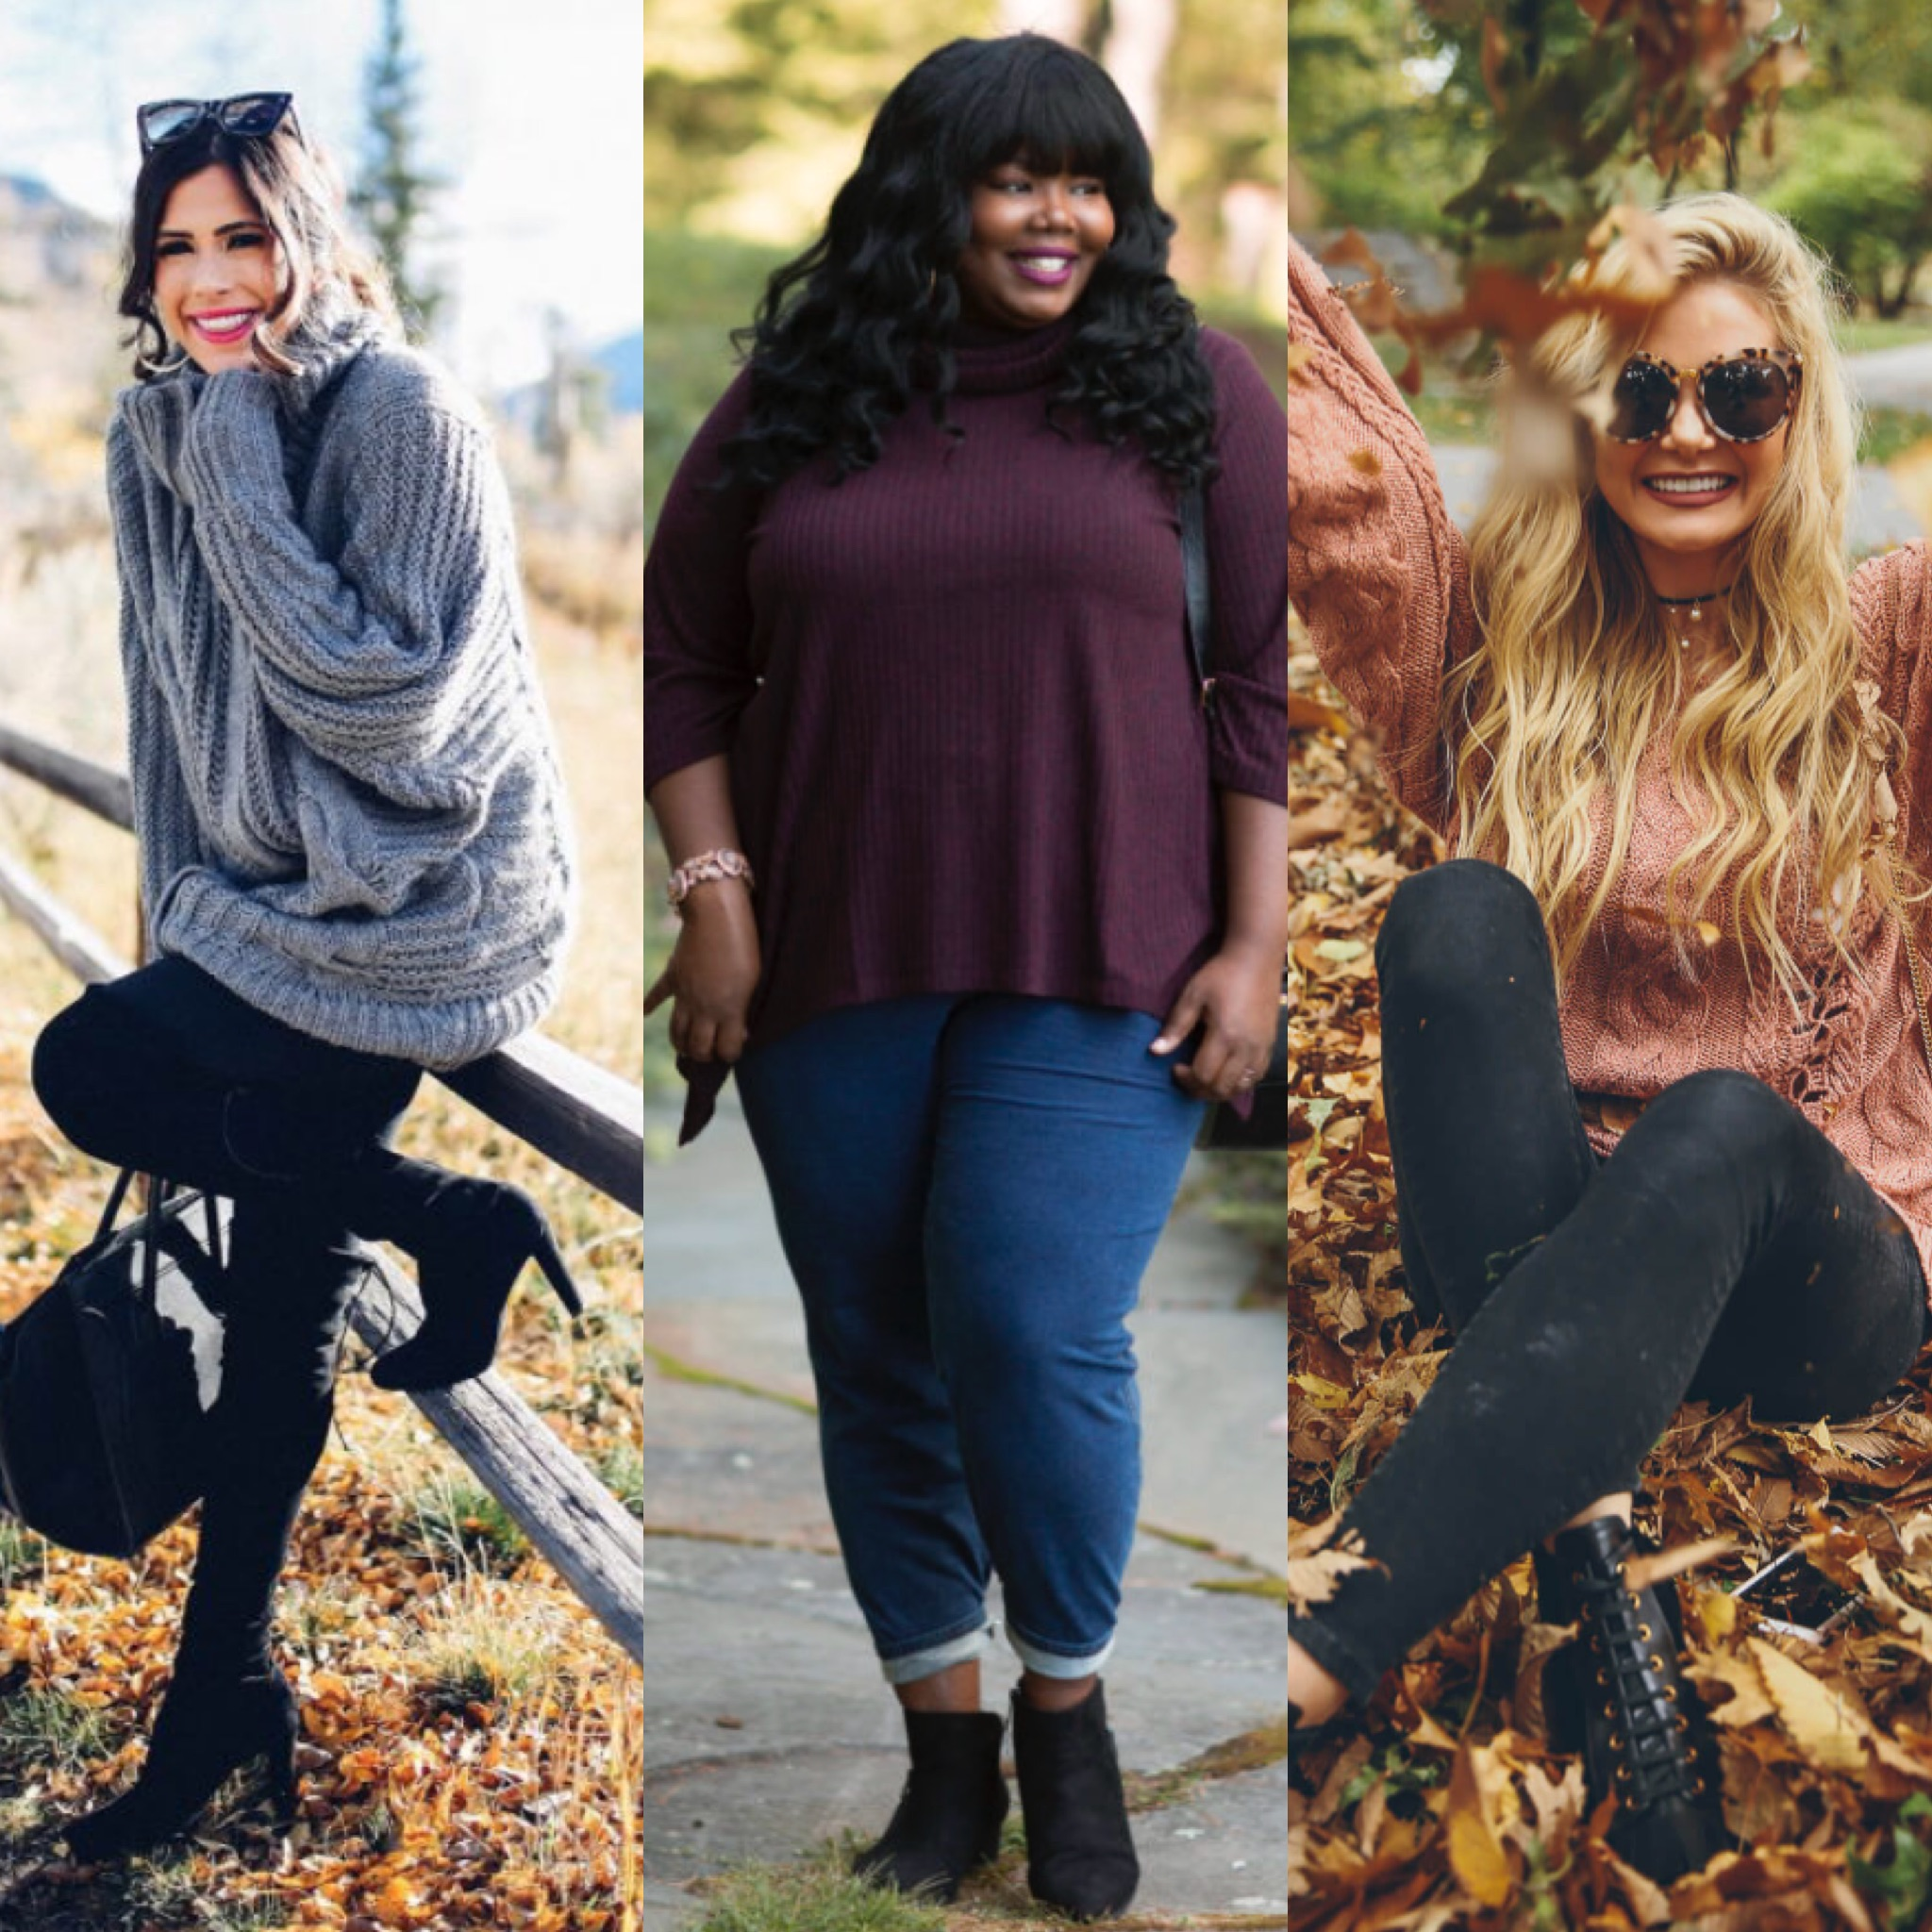 Sweater Weather, How To Rock This Favorite Fall Look